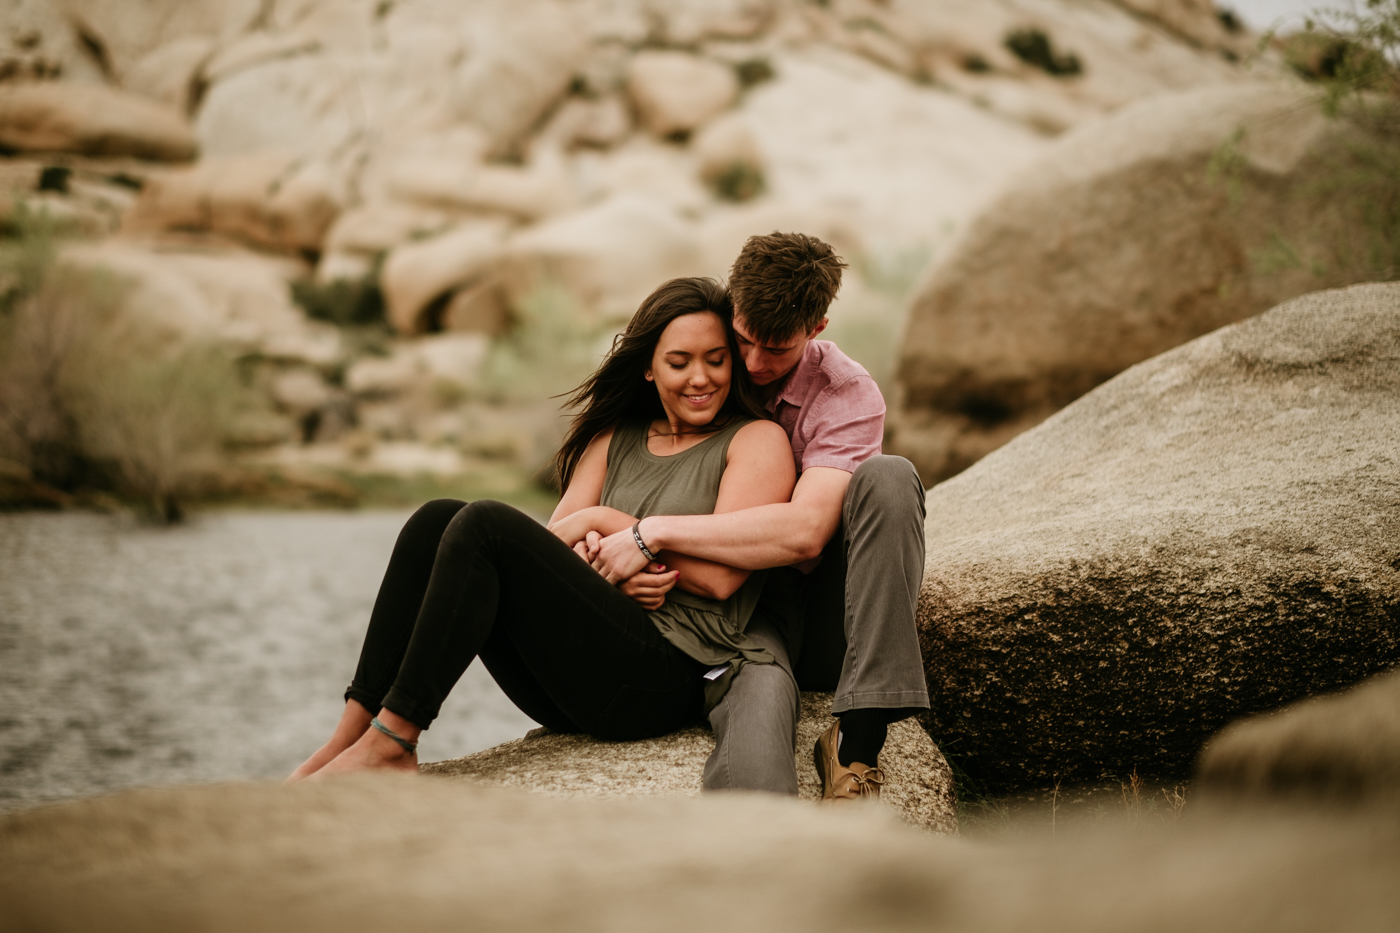 Baliey+Thomas.Engagement.JoshuaTree©mileswittboyer.com2018-36.jpg